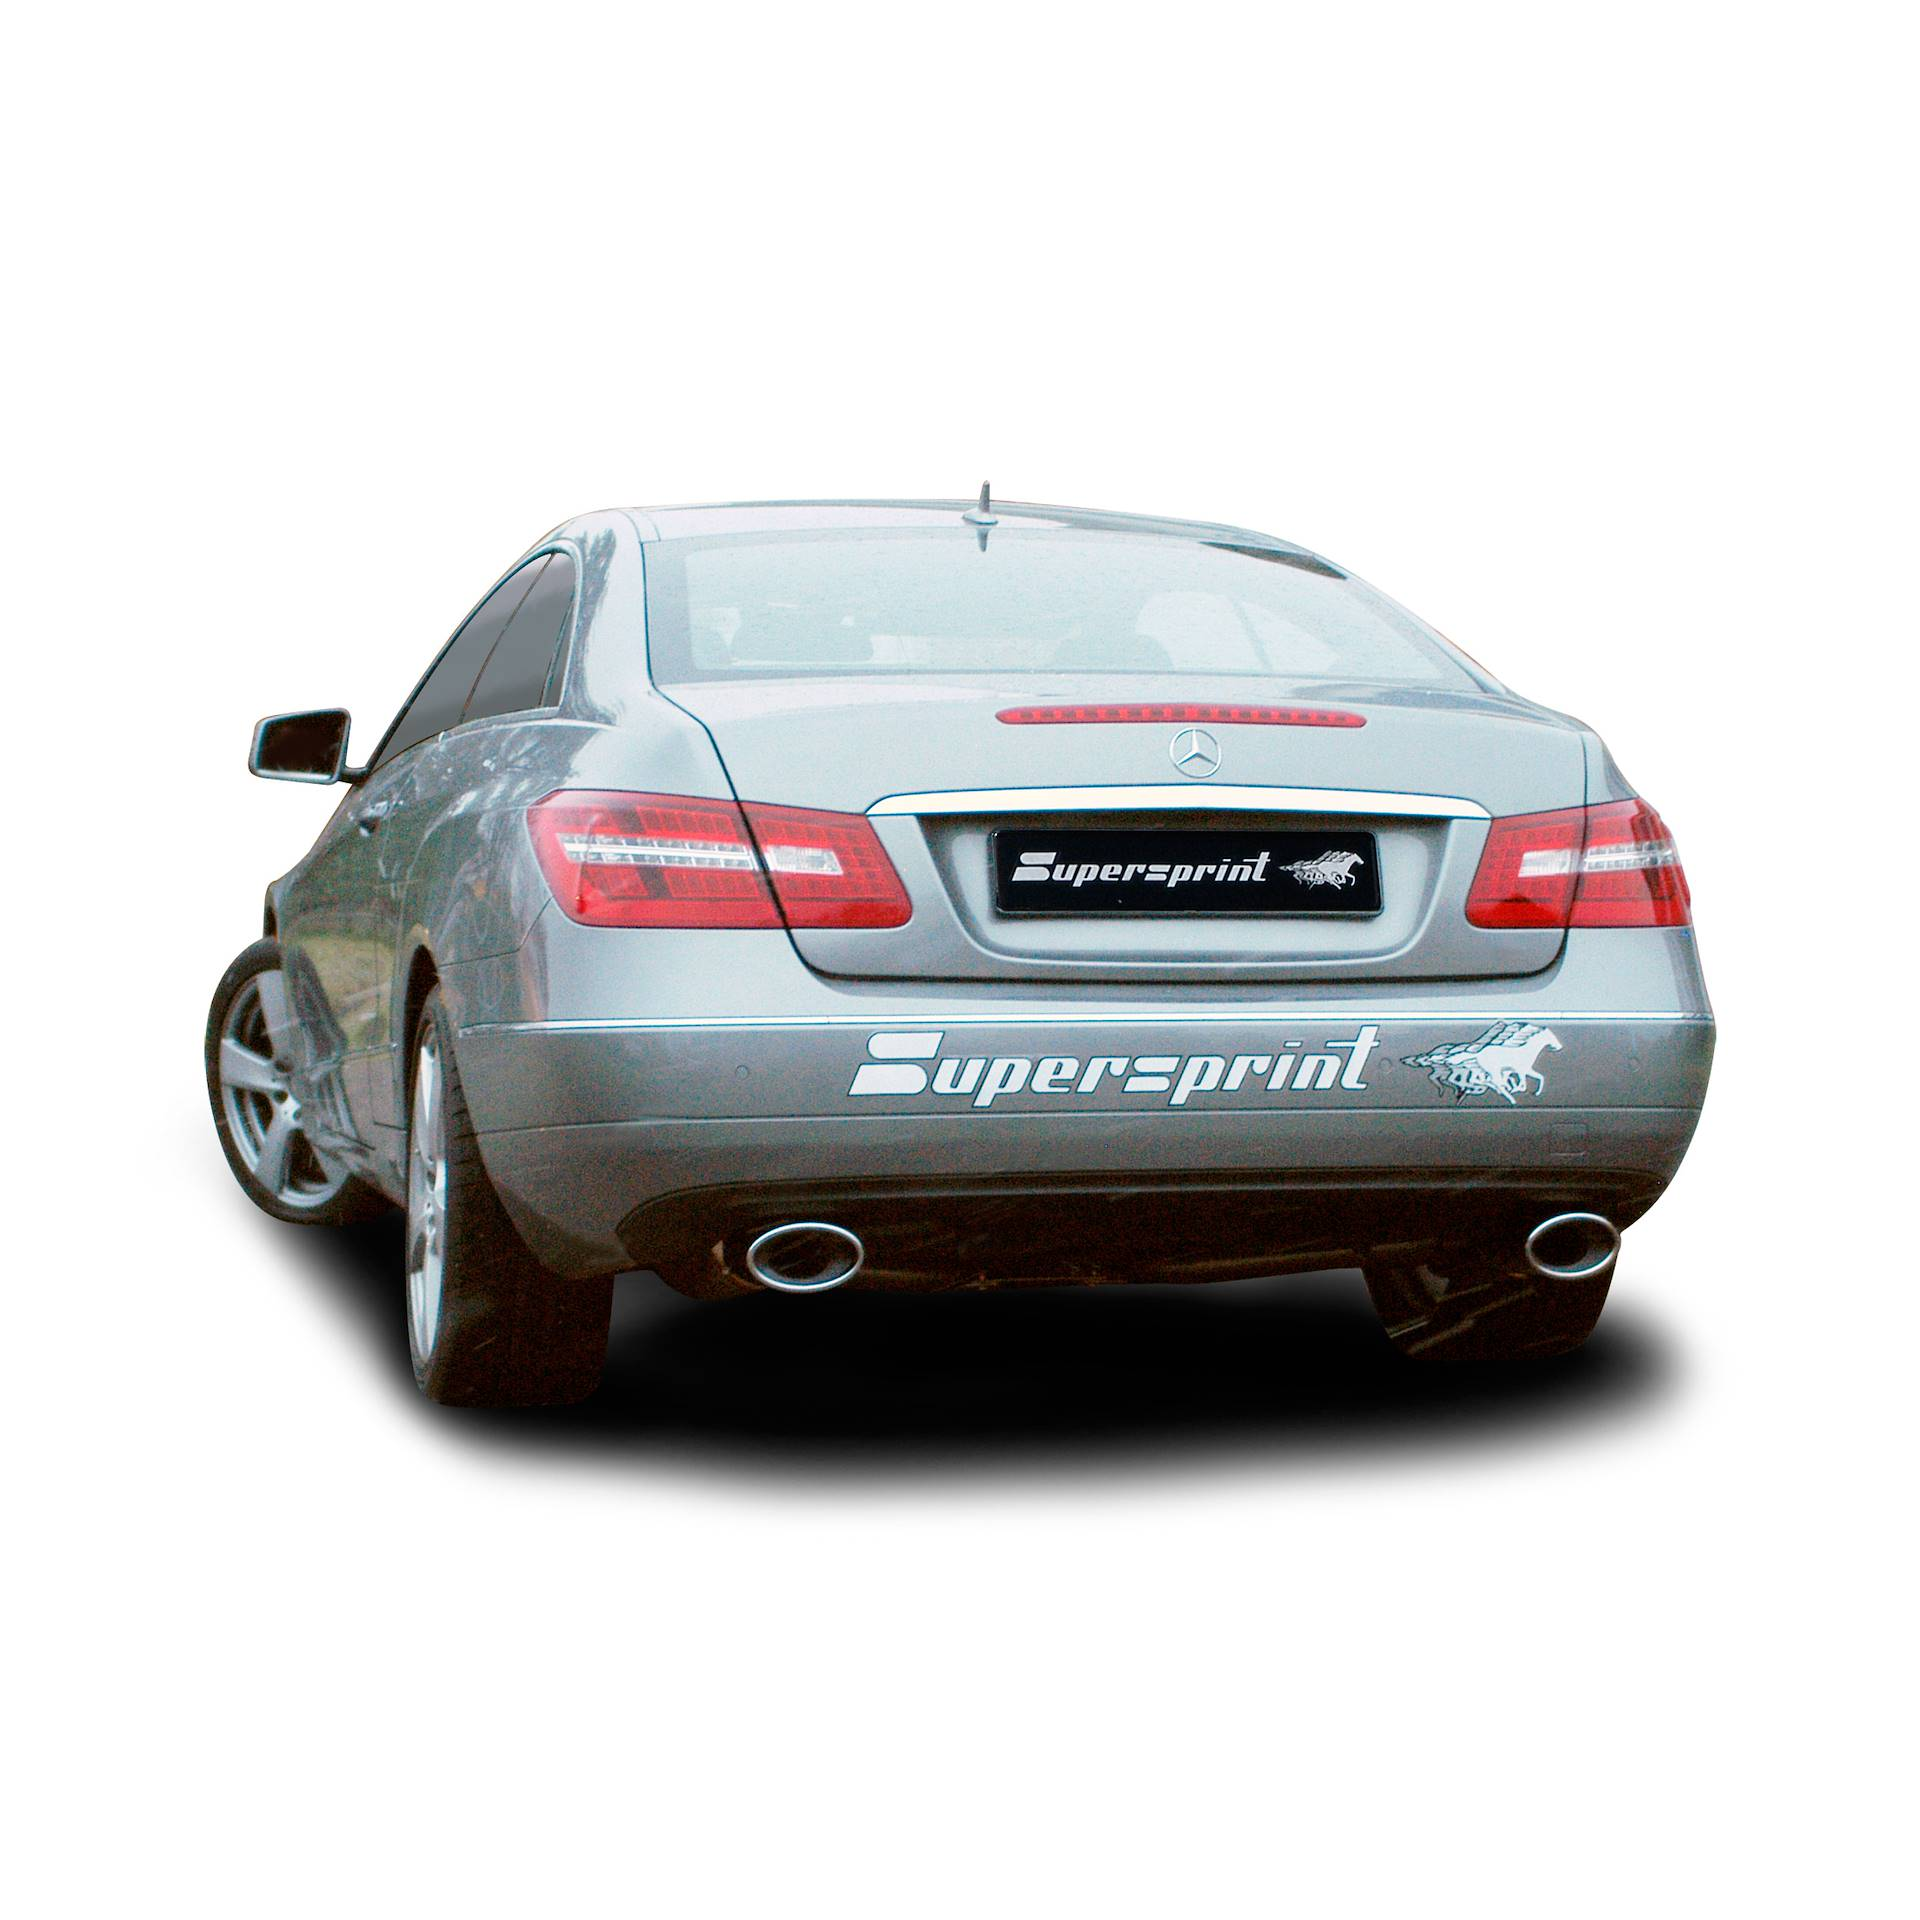 Supersprint exhaust system for Mercedes C350 CDI W204, Homemade videos